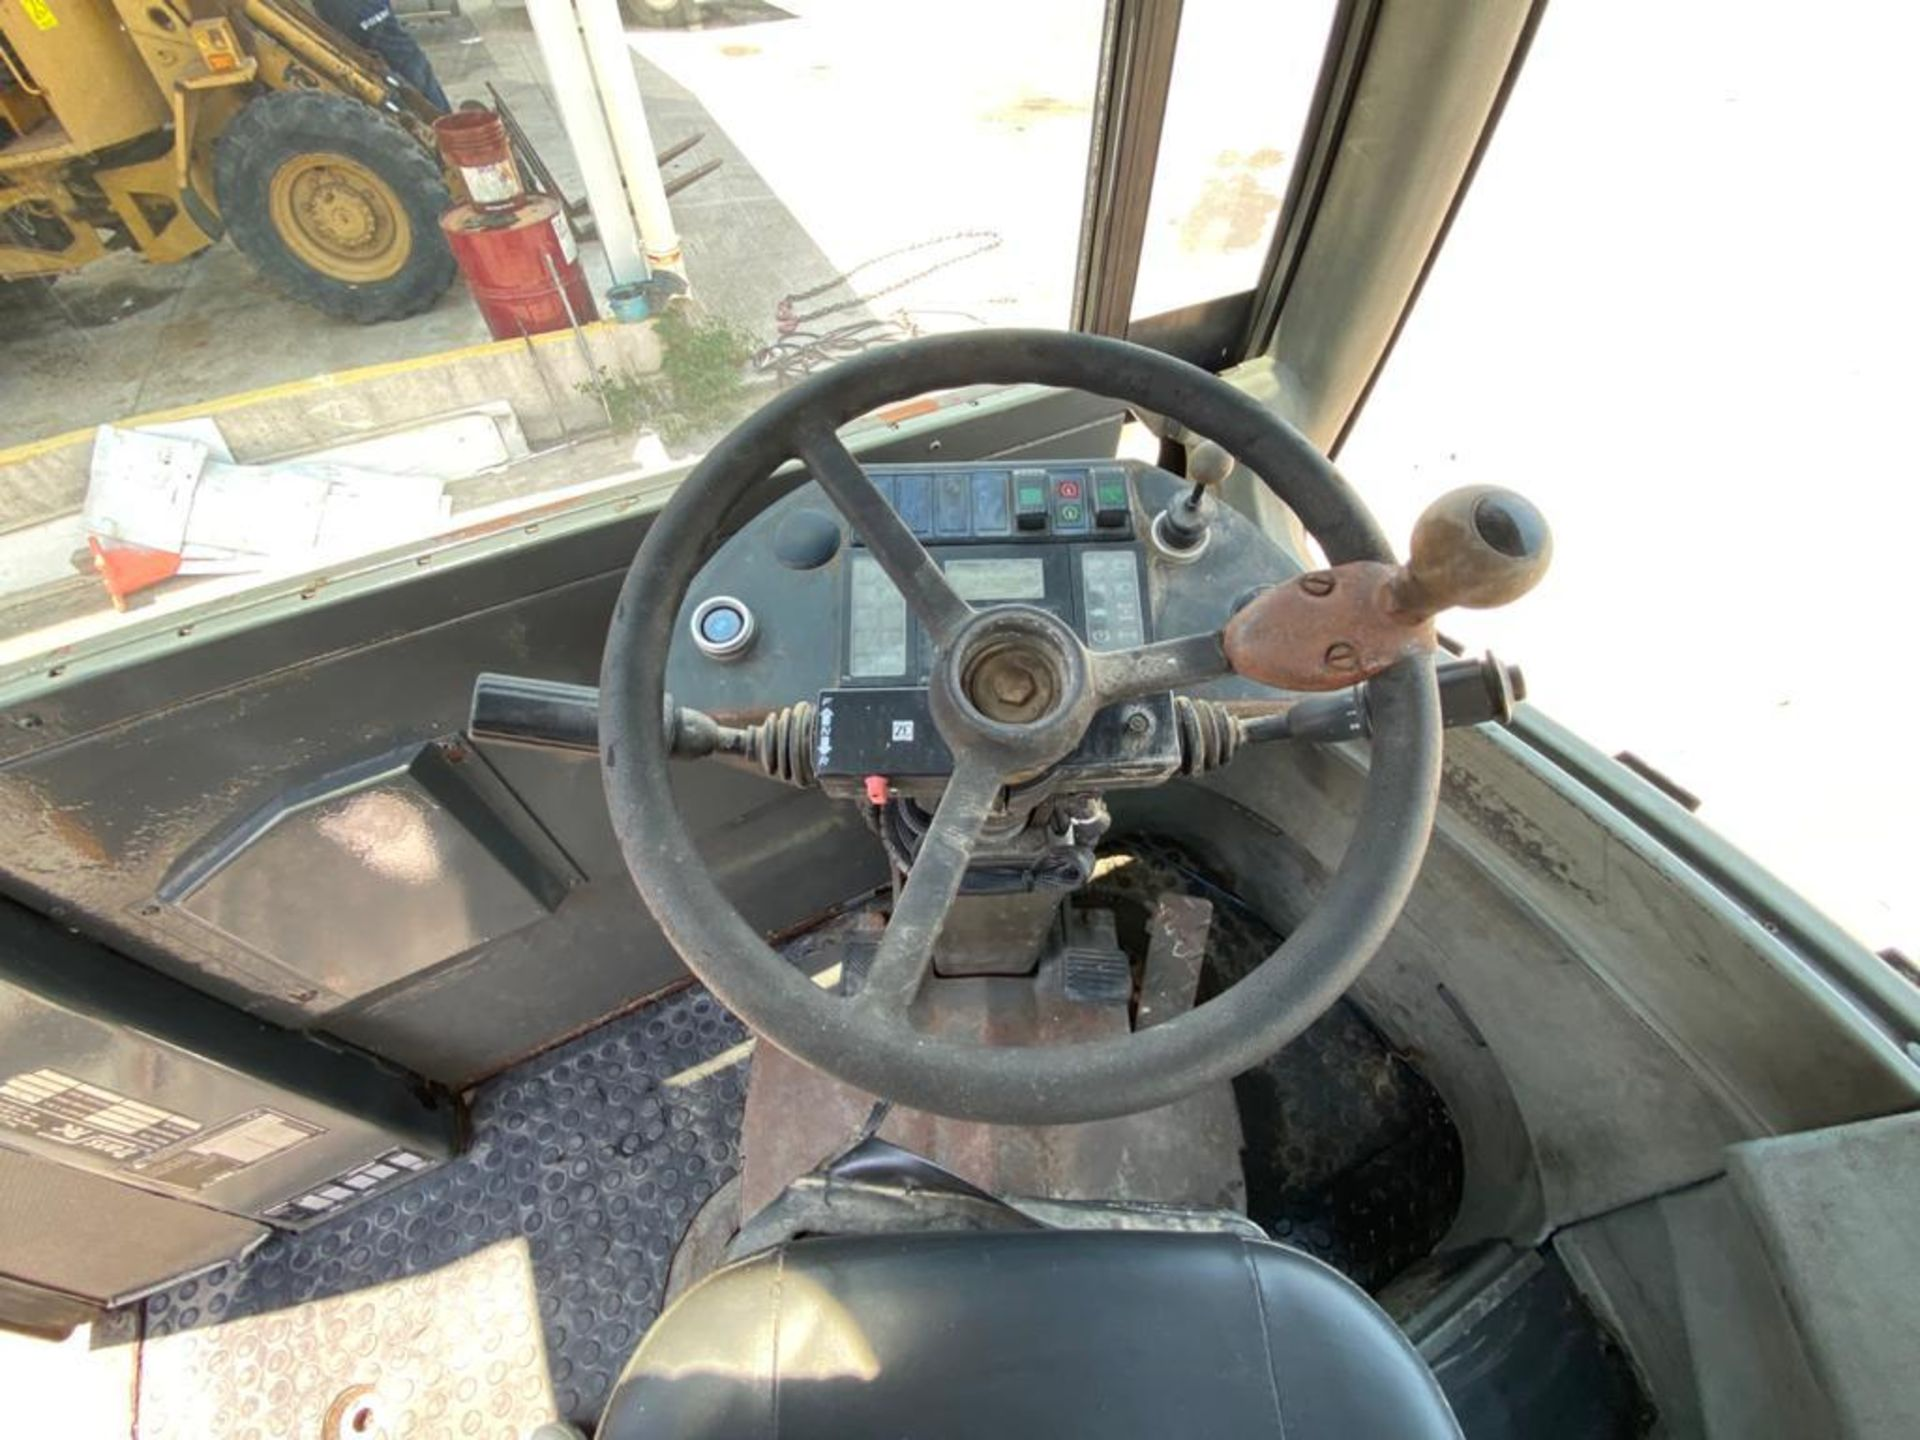 Terberg Capacity 2002 Terminal Tractor, automatic transmission - Image 29 of 57